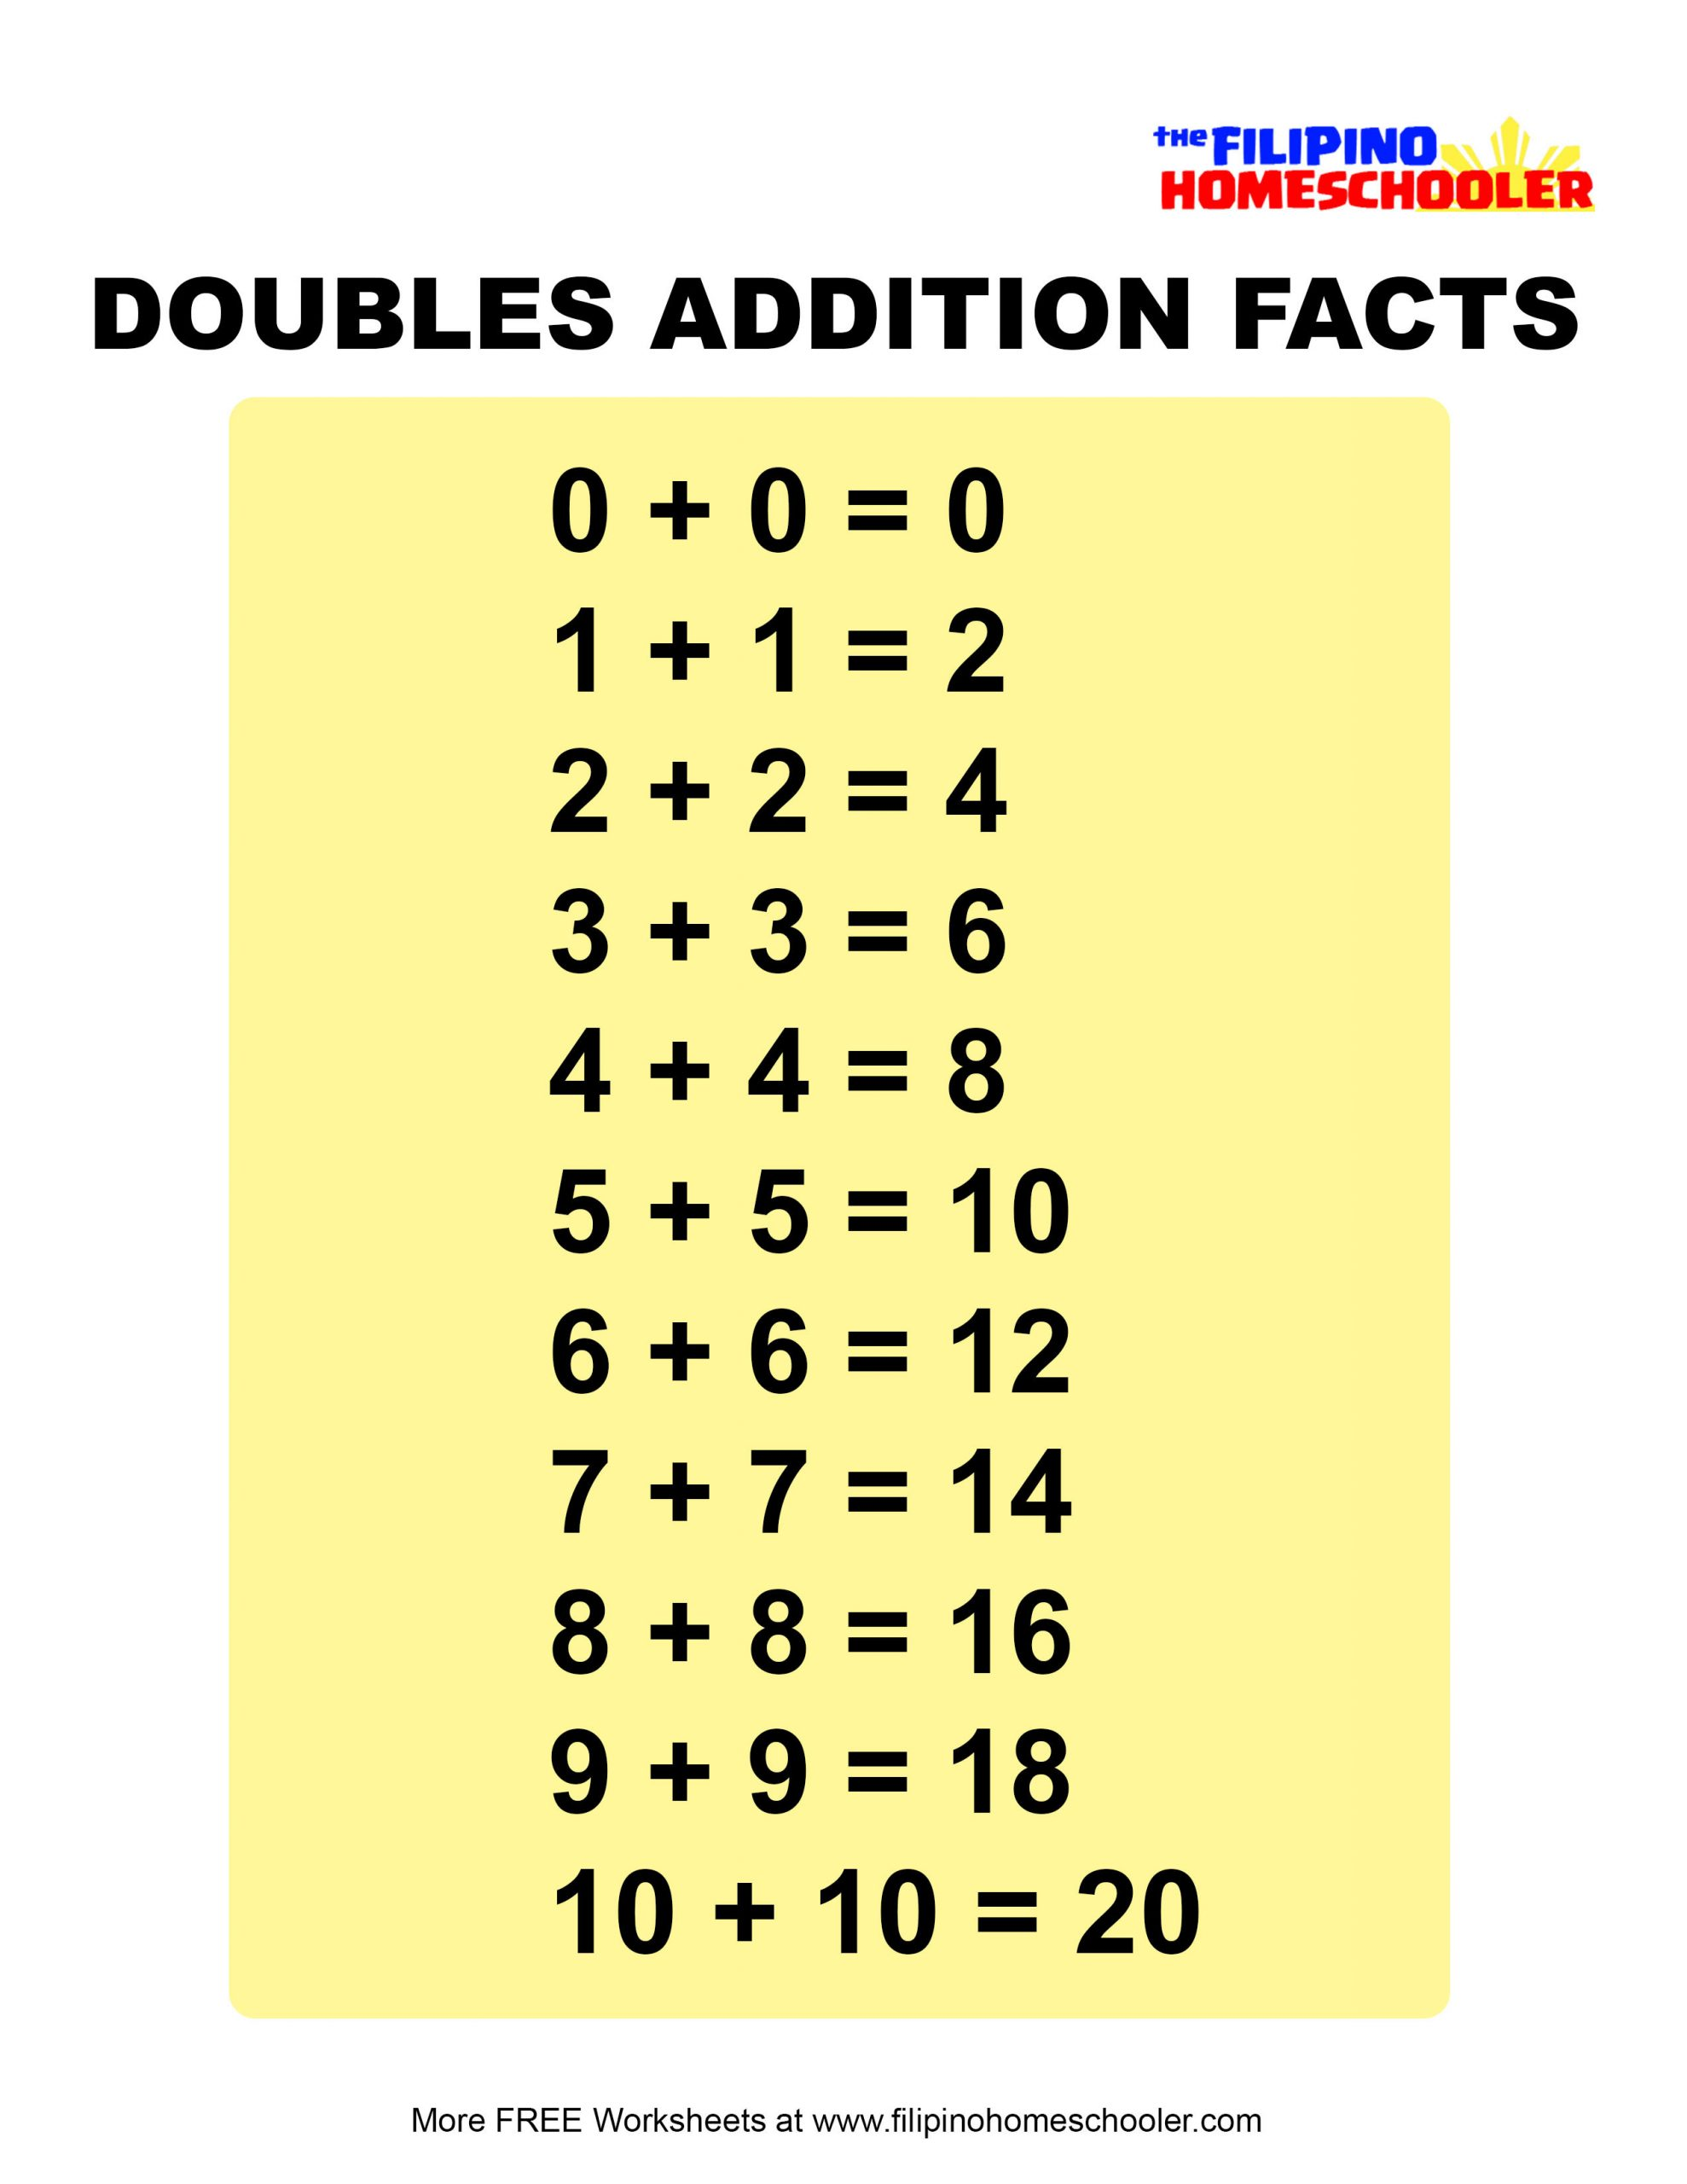 Doubles Math Facts Worksheets Adding Doubles Worksheets and Teaching Strategies — the